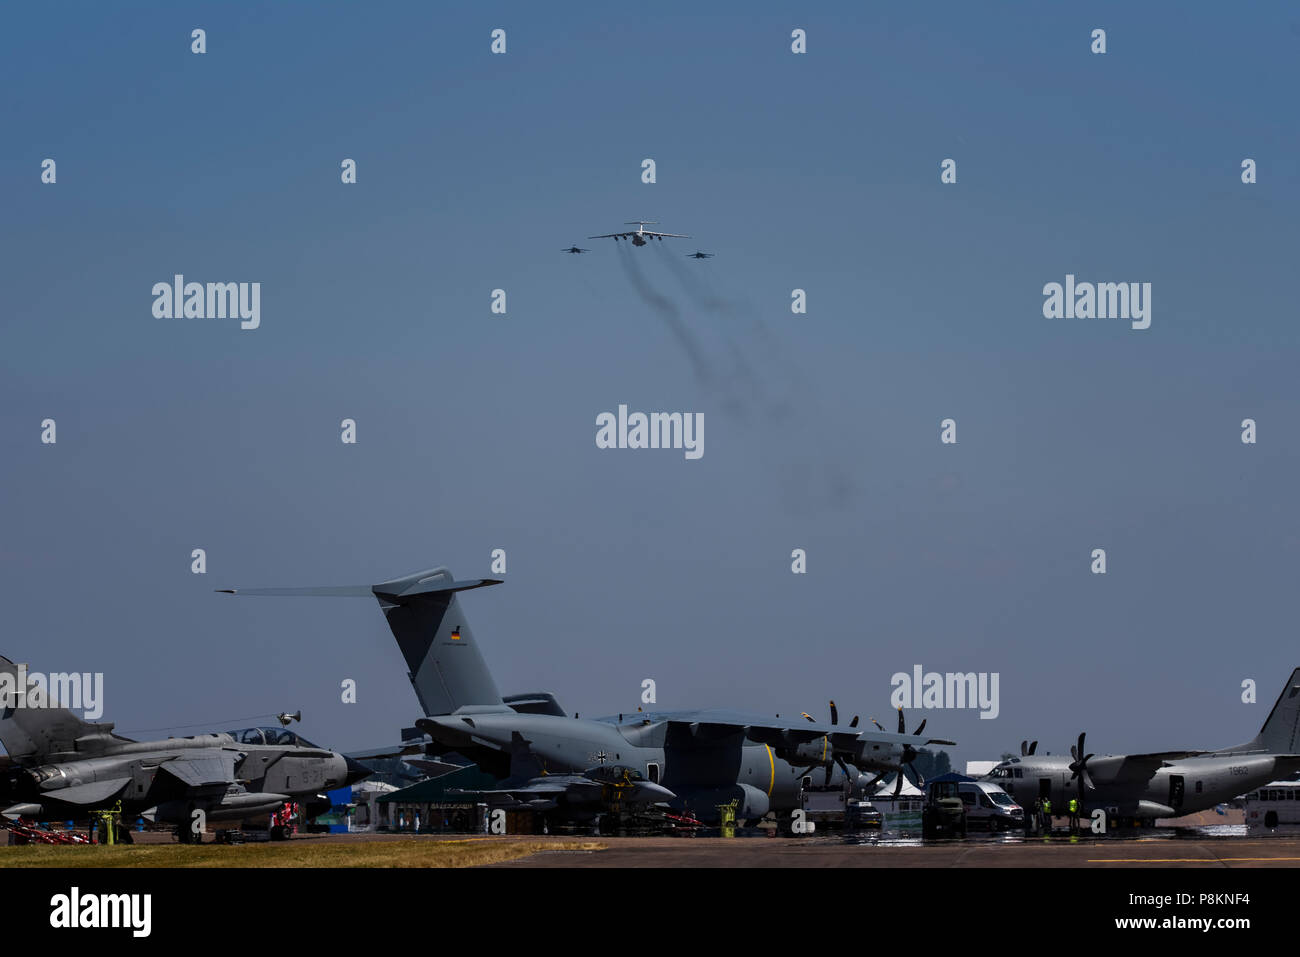 Ukrainian Air Force, an Ilyushin Il-76 tanker transport and two Sukhoi Su-27 Flanker fighters - all Russian built - arriving over RAF Fairford for at Royal International Air Tattoo, RIAT 2018. Transport aircraft below - Stock Image